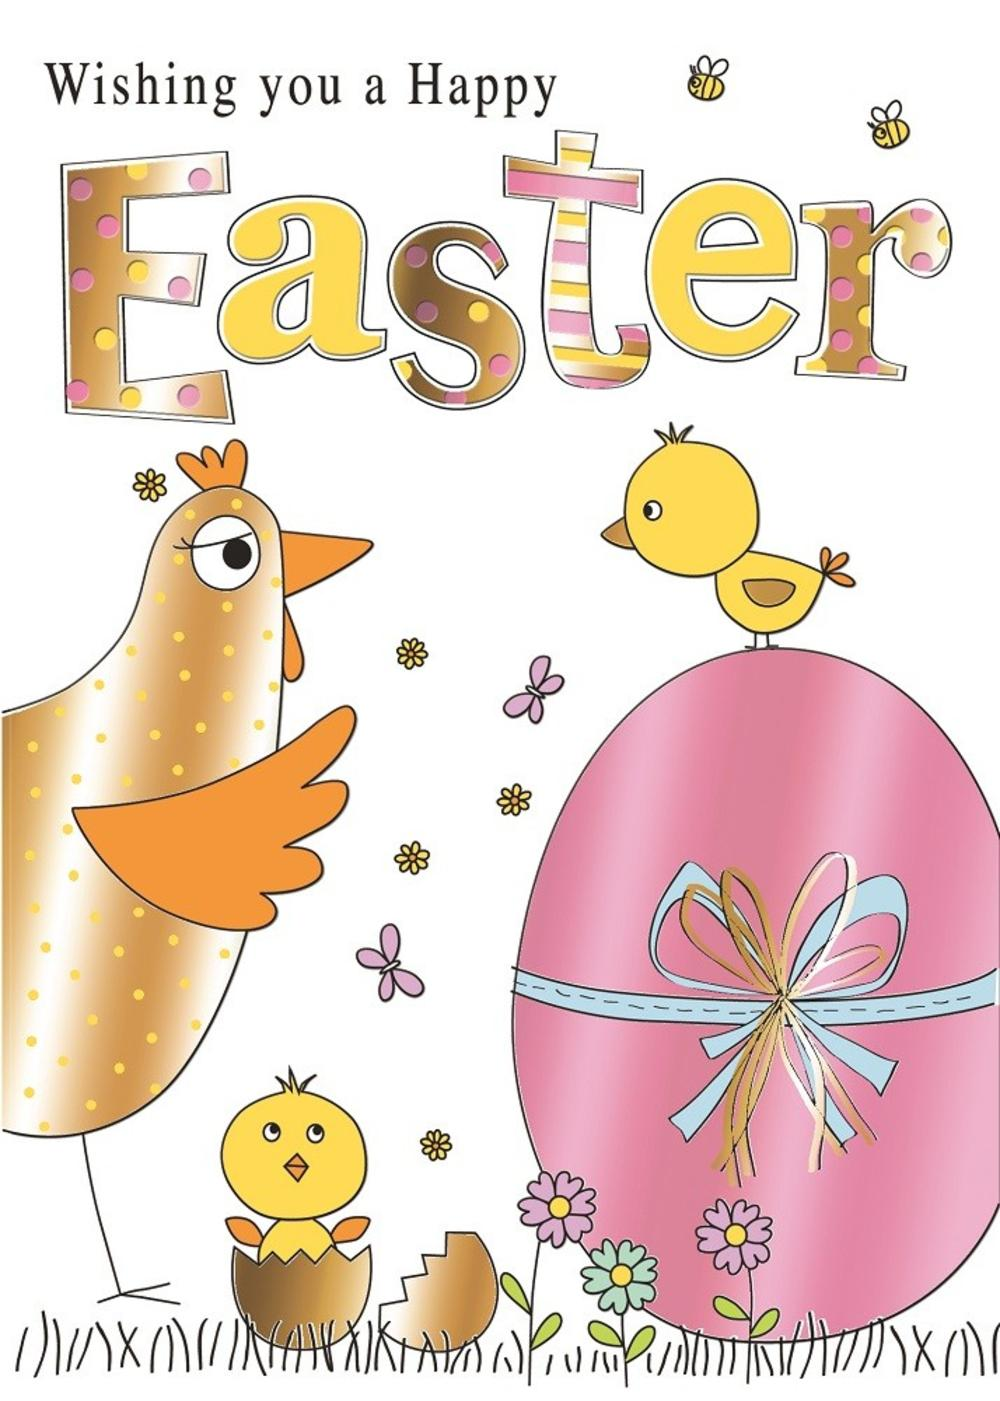 Chicken Chicks & Eggs Happy Easter Greeting Card